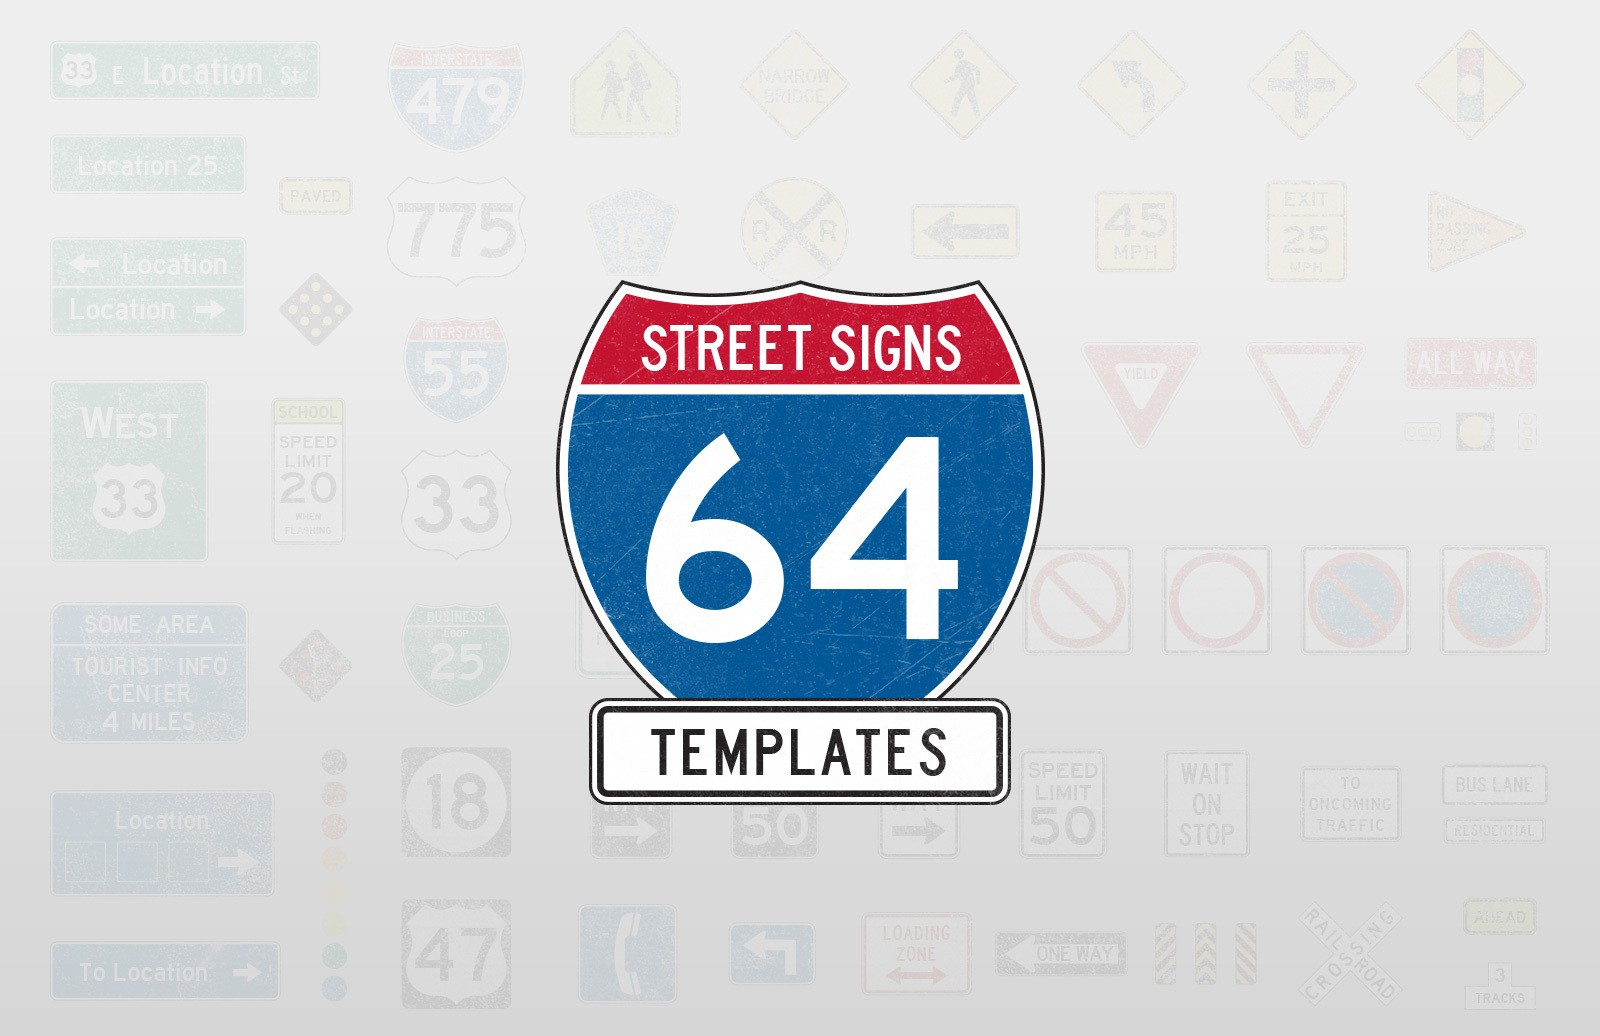 Street Signs Templates Preview 1